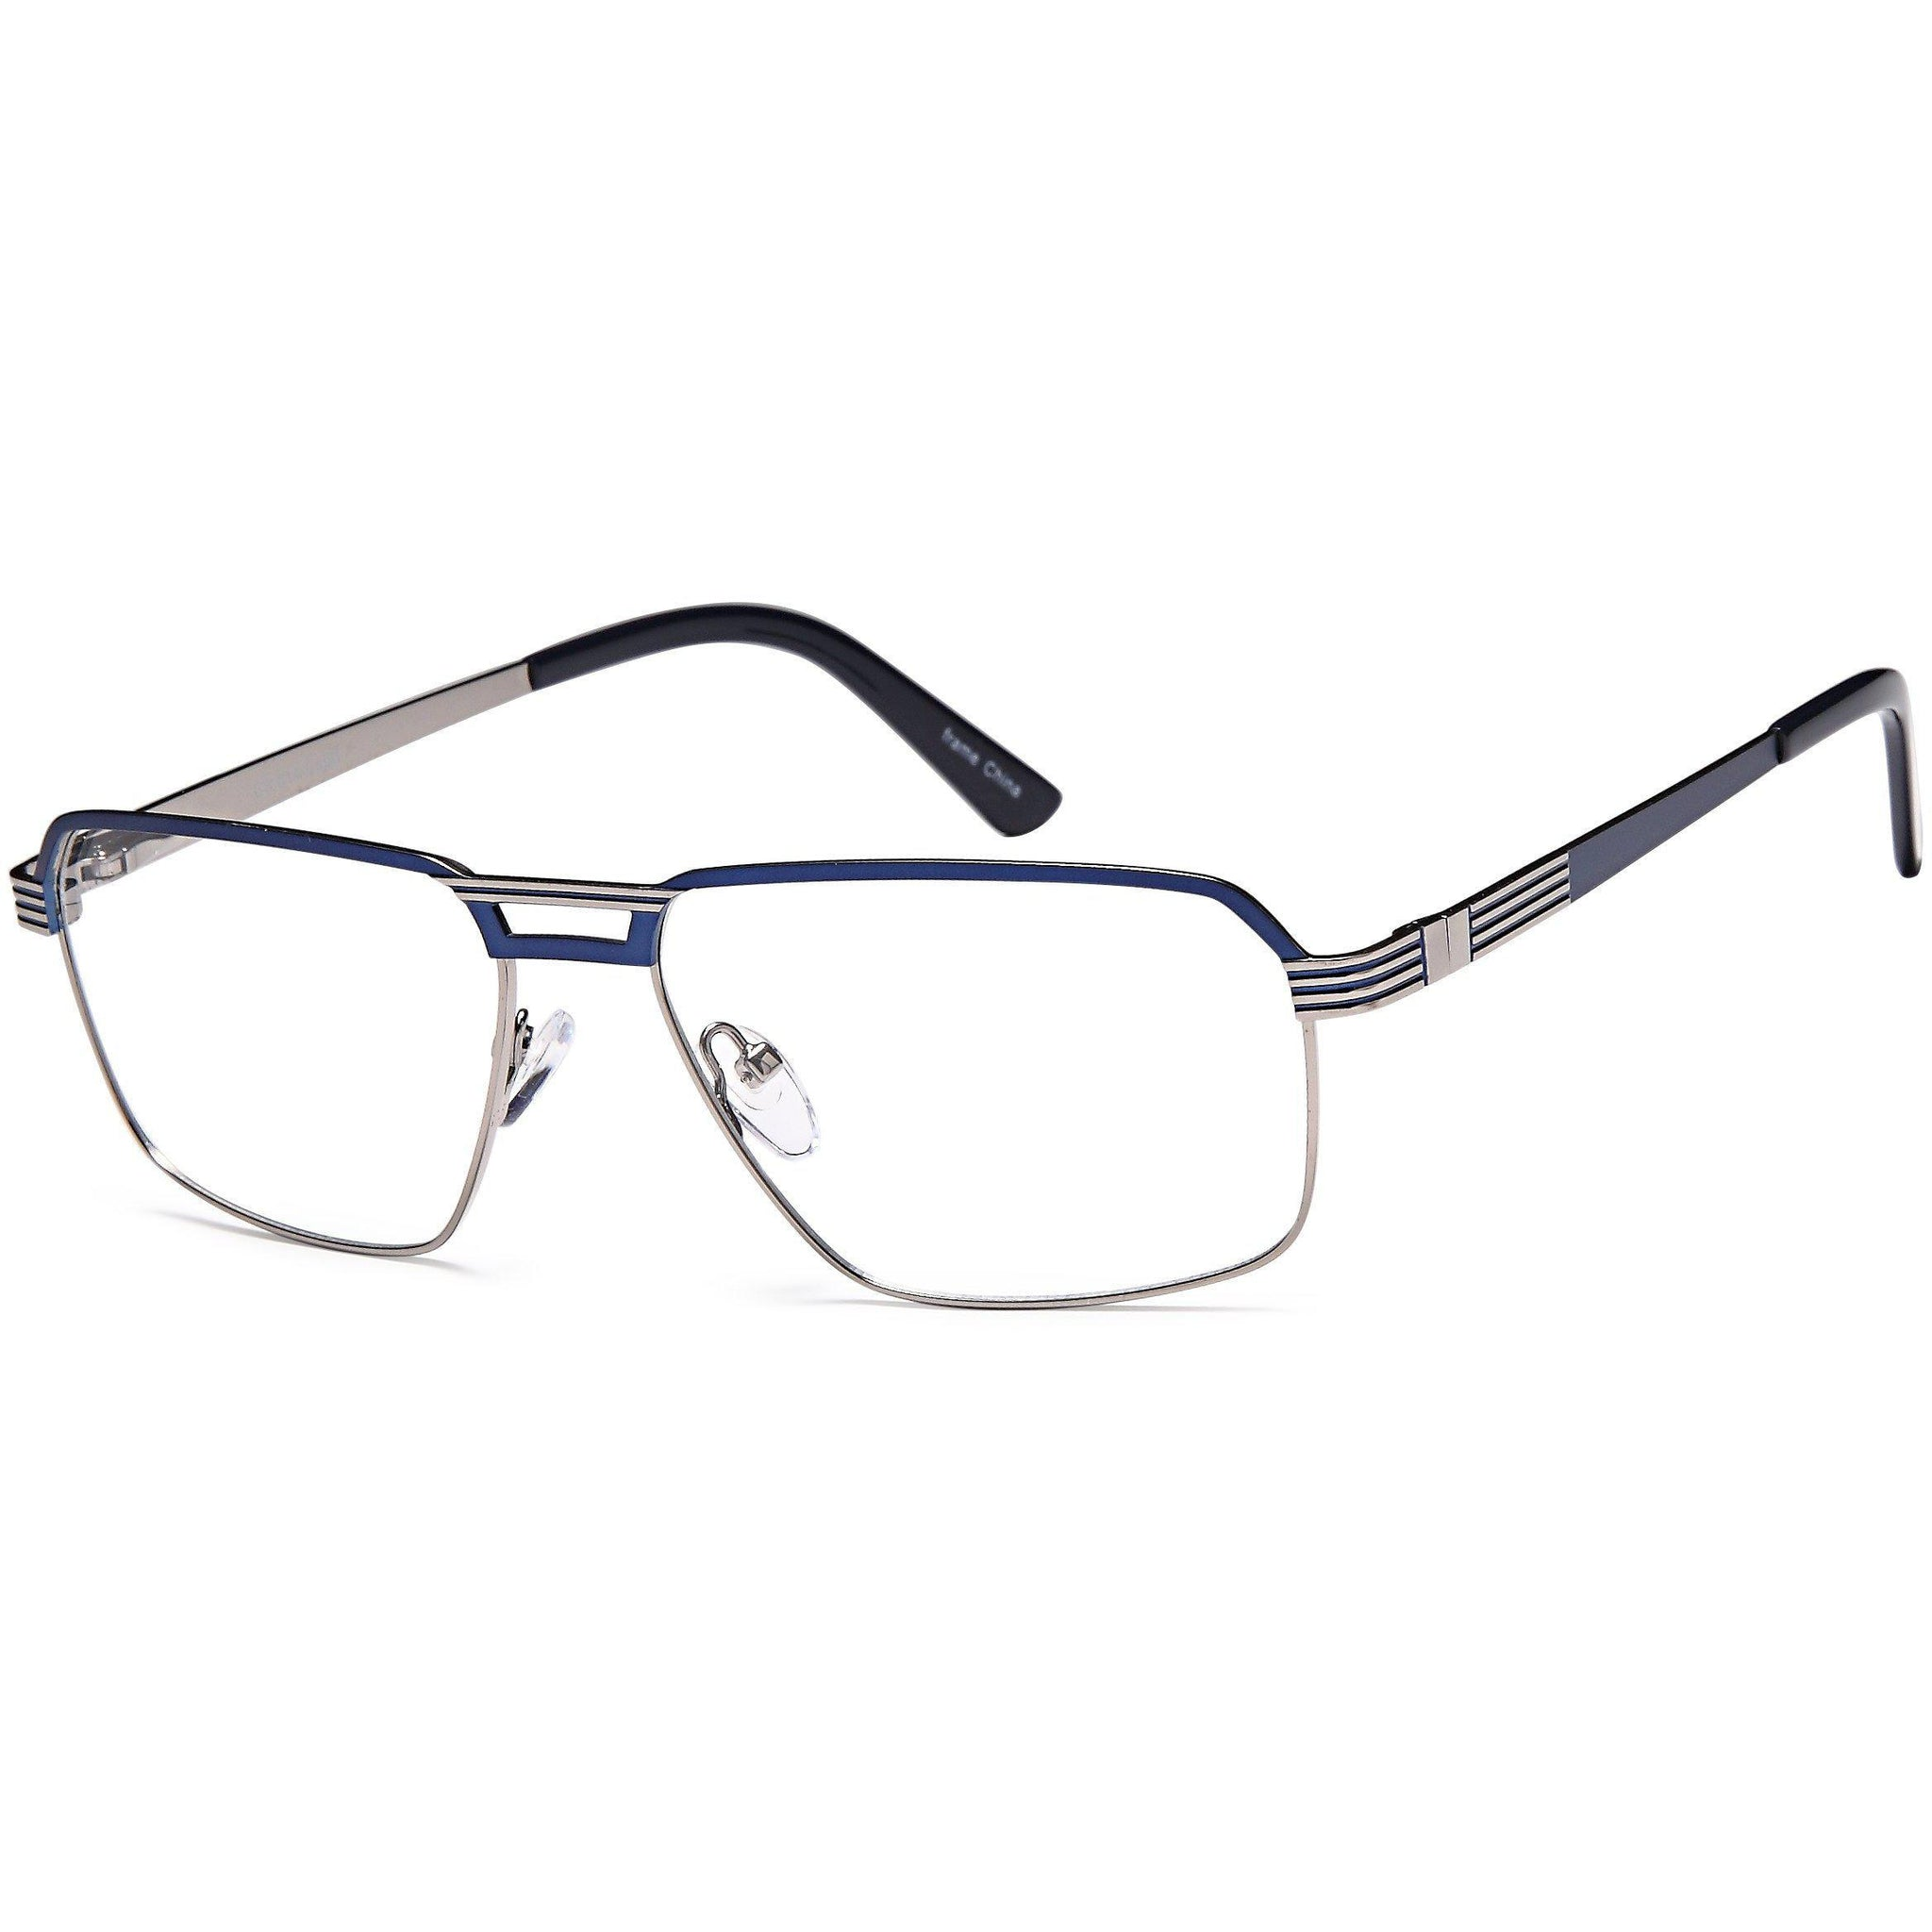 SizeUp Prescription Glasses GR 814 Eyeglasses Frames